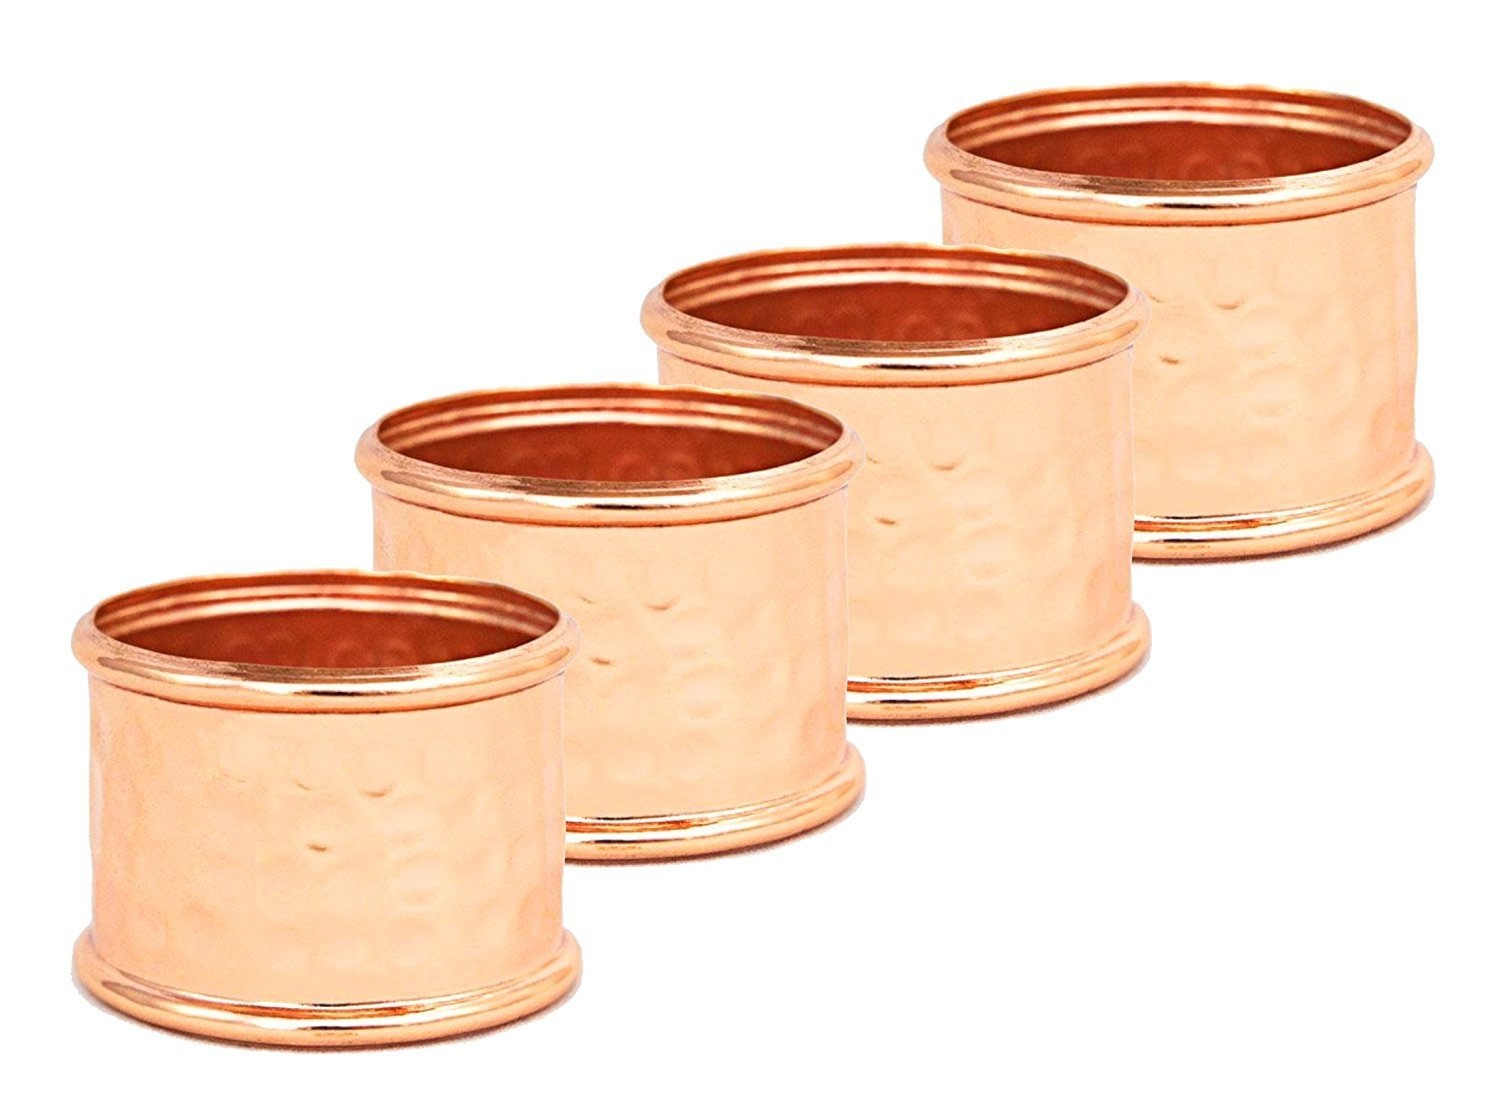 Round Hammered Copper Napkin Rings (Set of 4) - by Alchemade 6105